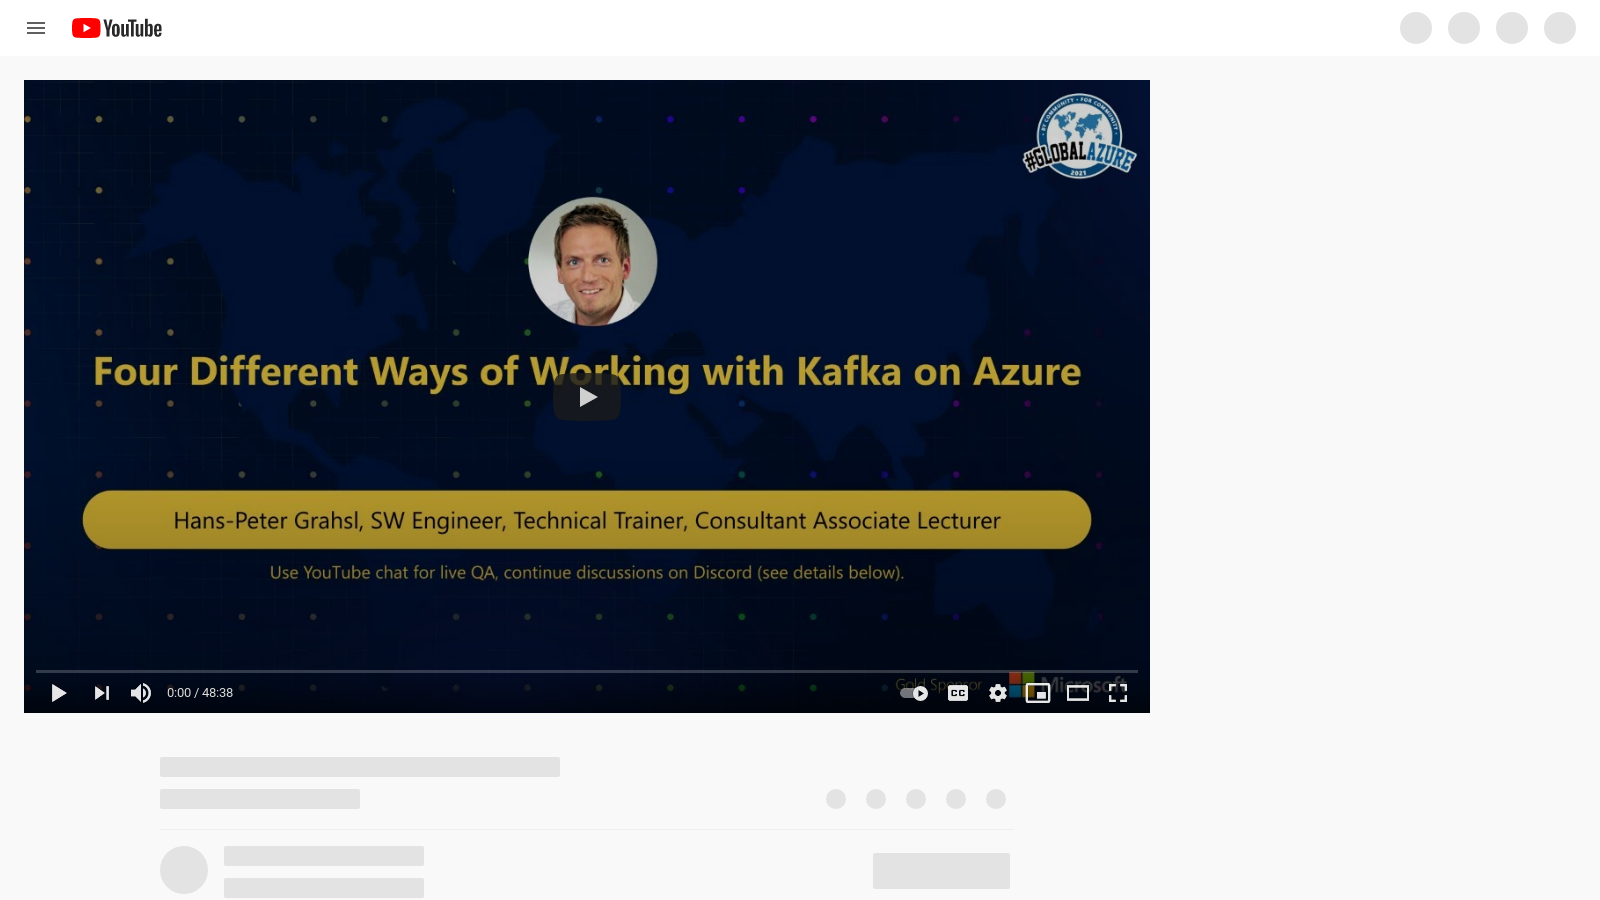 4 Different Ways of Working with Kafka on Azure